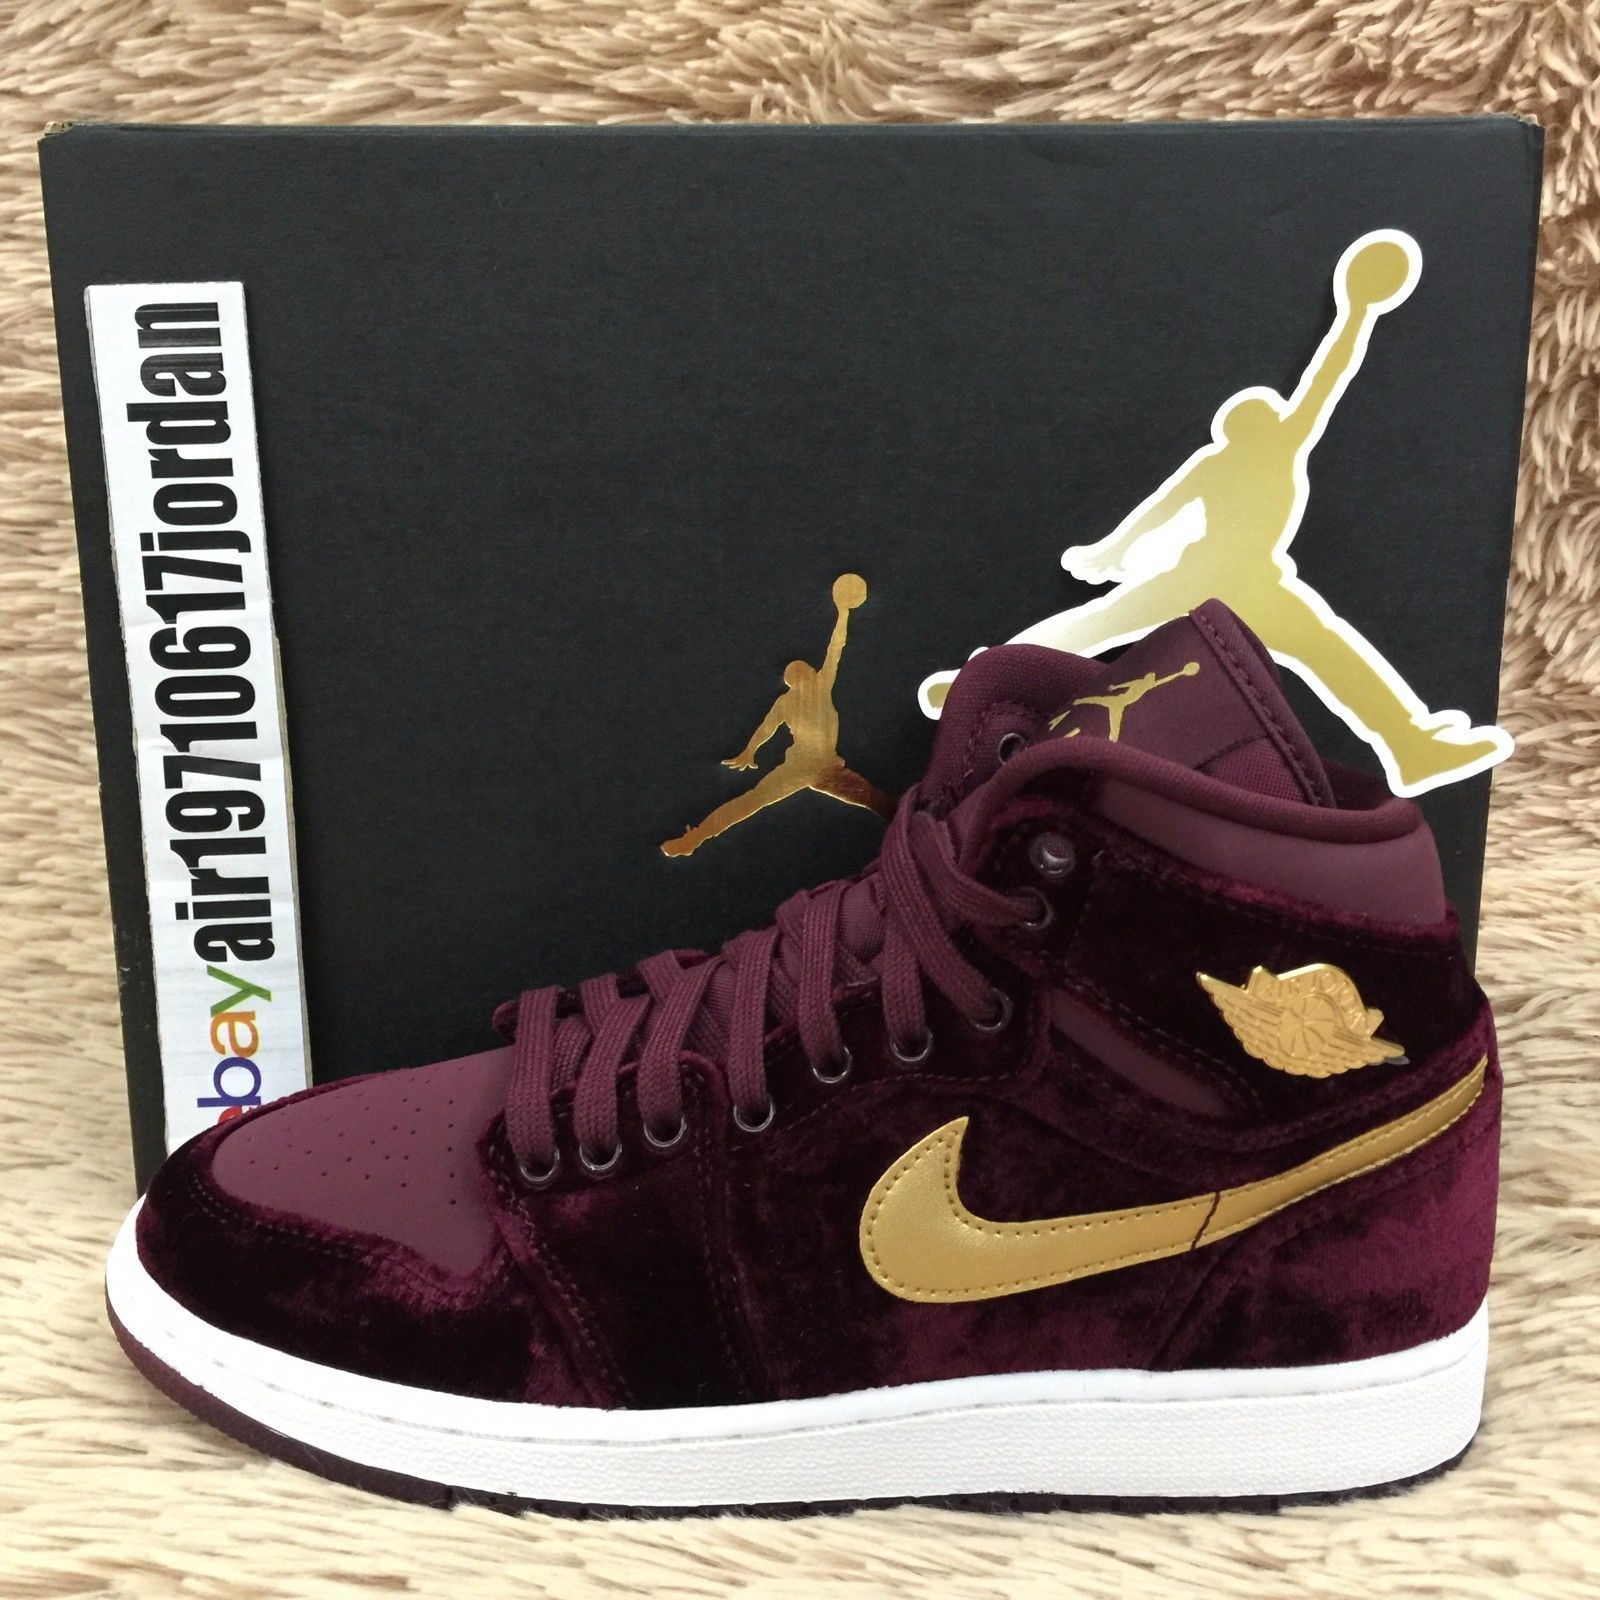 467d3ac5146665 Air Jordan 1 Retro HI GG HC Heiress Collection Velvet Gold US 4~7Y ...